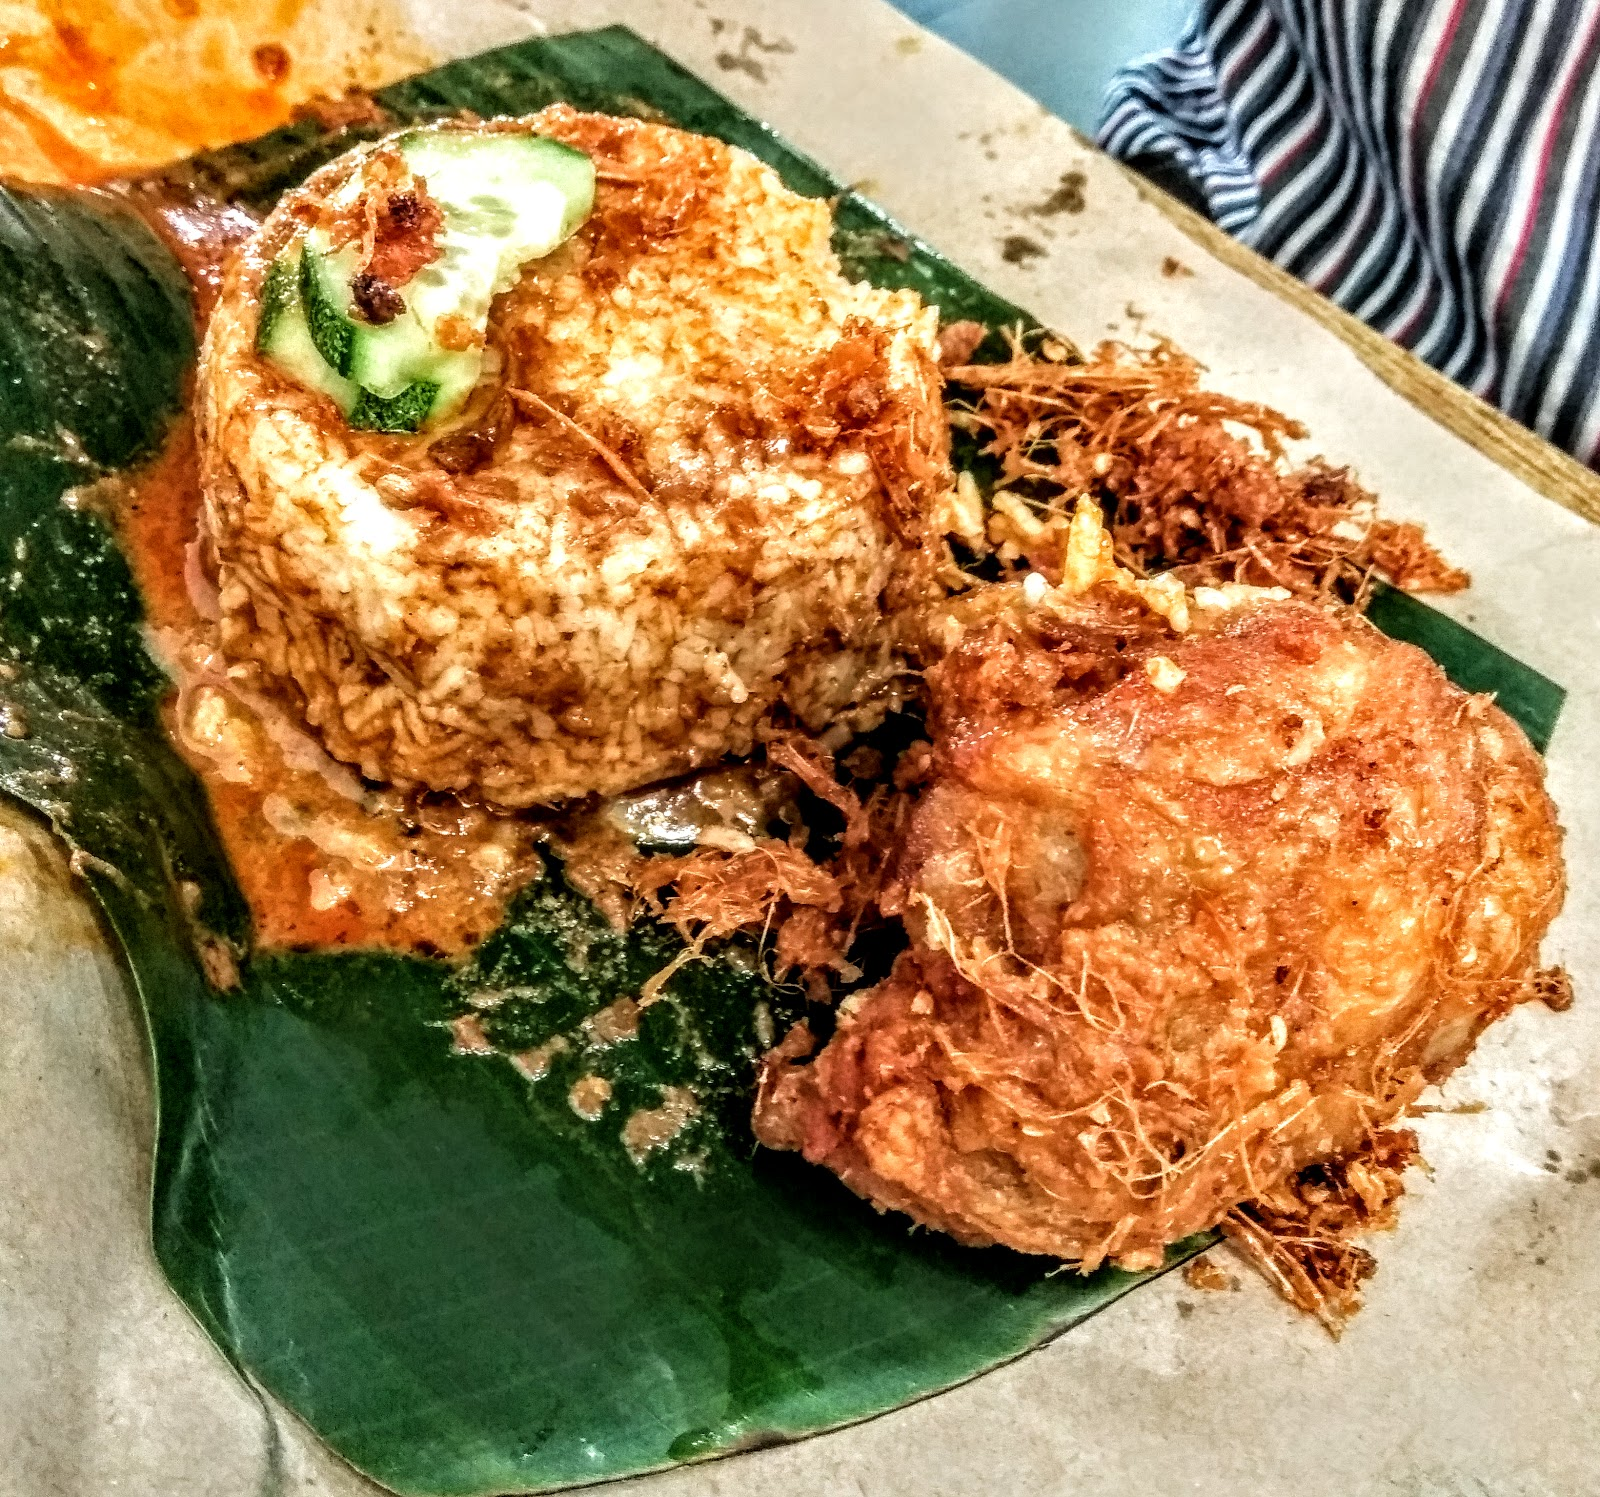 Clic Nasi Kukus Ayam Berempah Hands Up If You Are A Malaysian But S Fried En Because Most Likely Don T Exist P Look At How My Rice Was